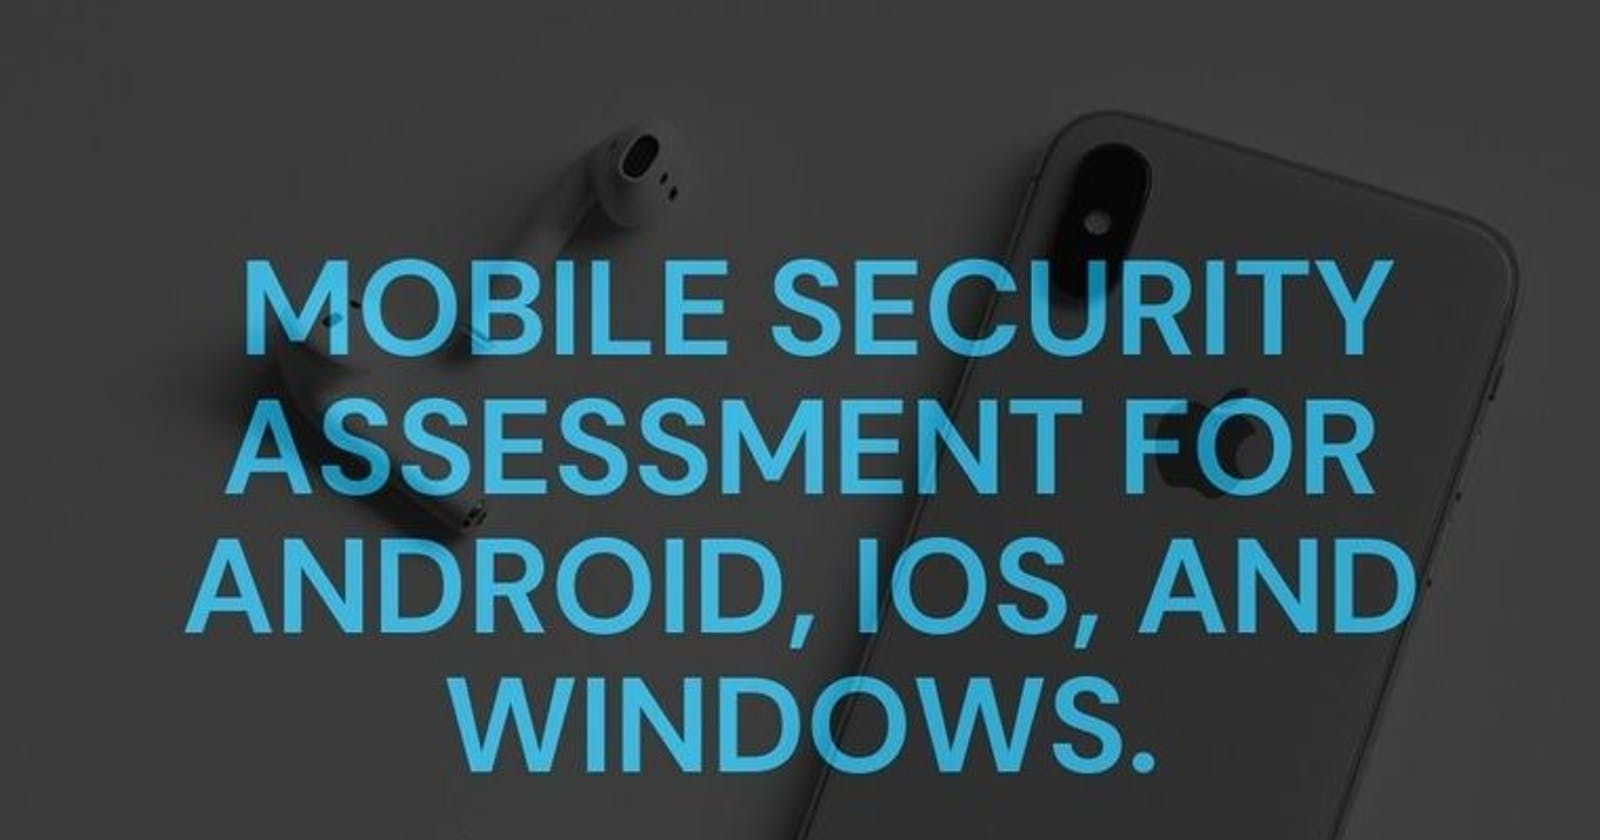 Mobile Security Assessment for Android, iOS, and Windows